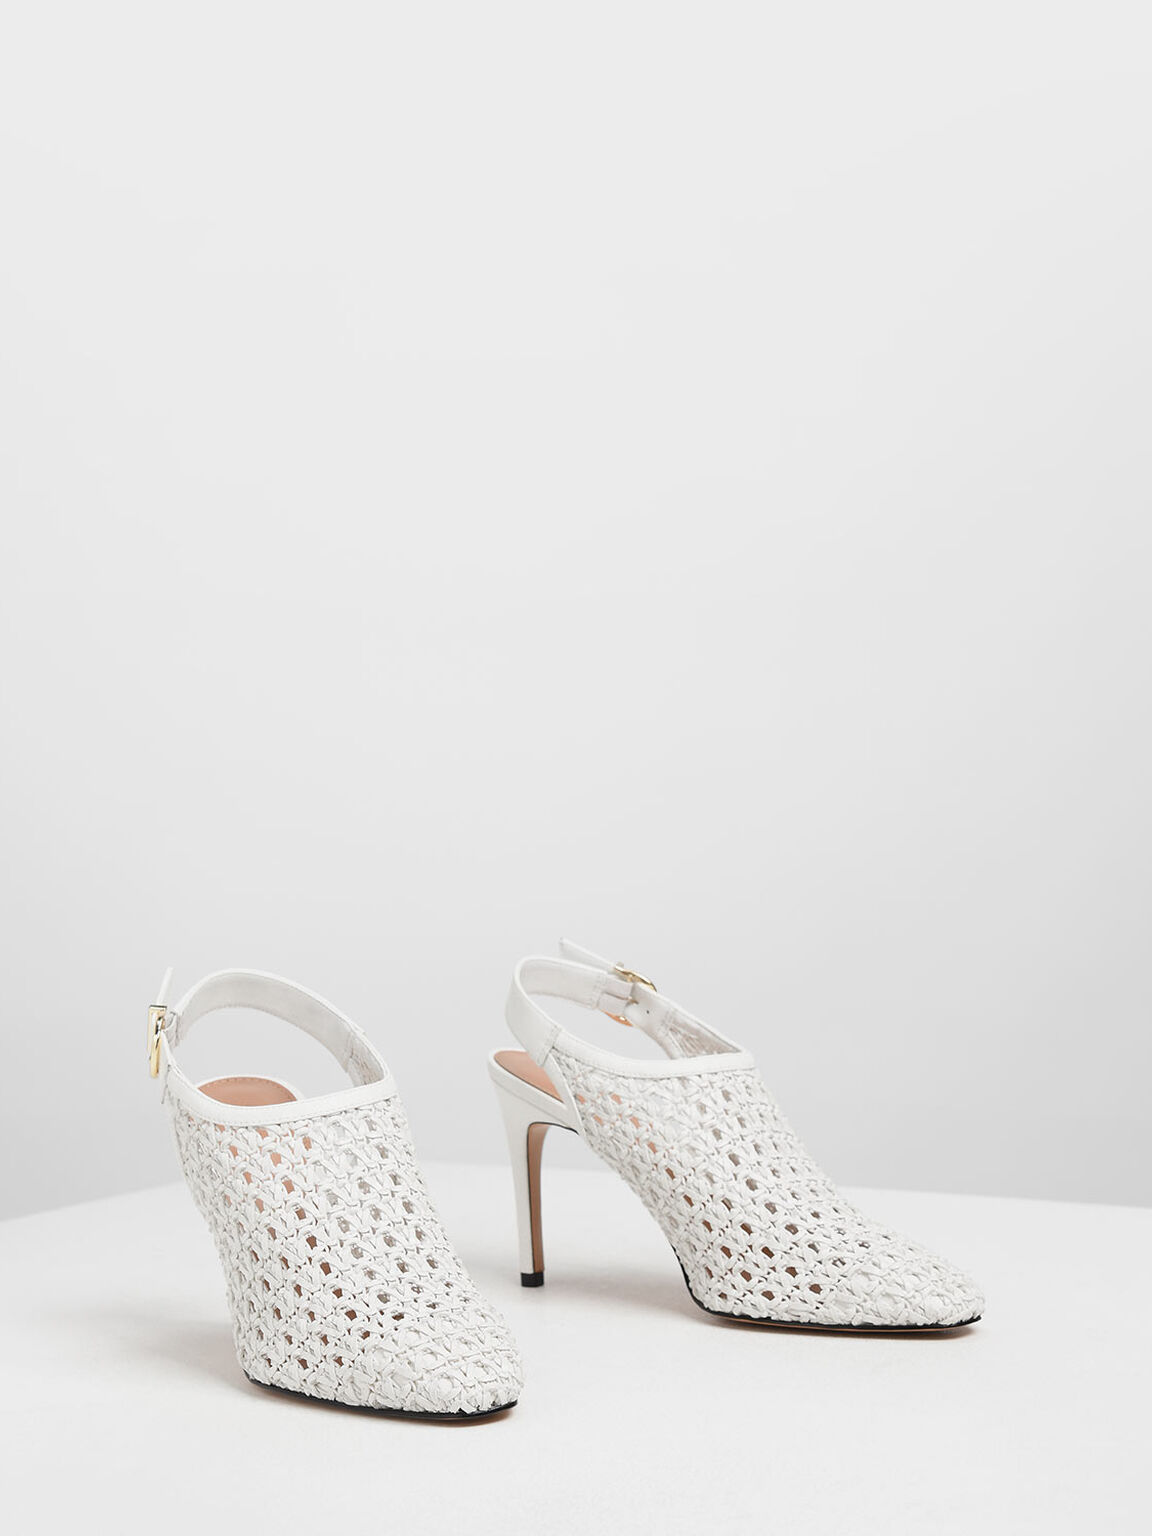 Woven Slingback Ankle Boots, White, hi-res